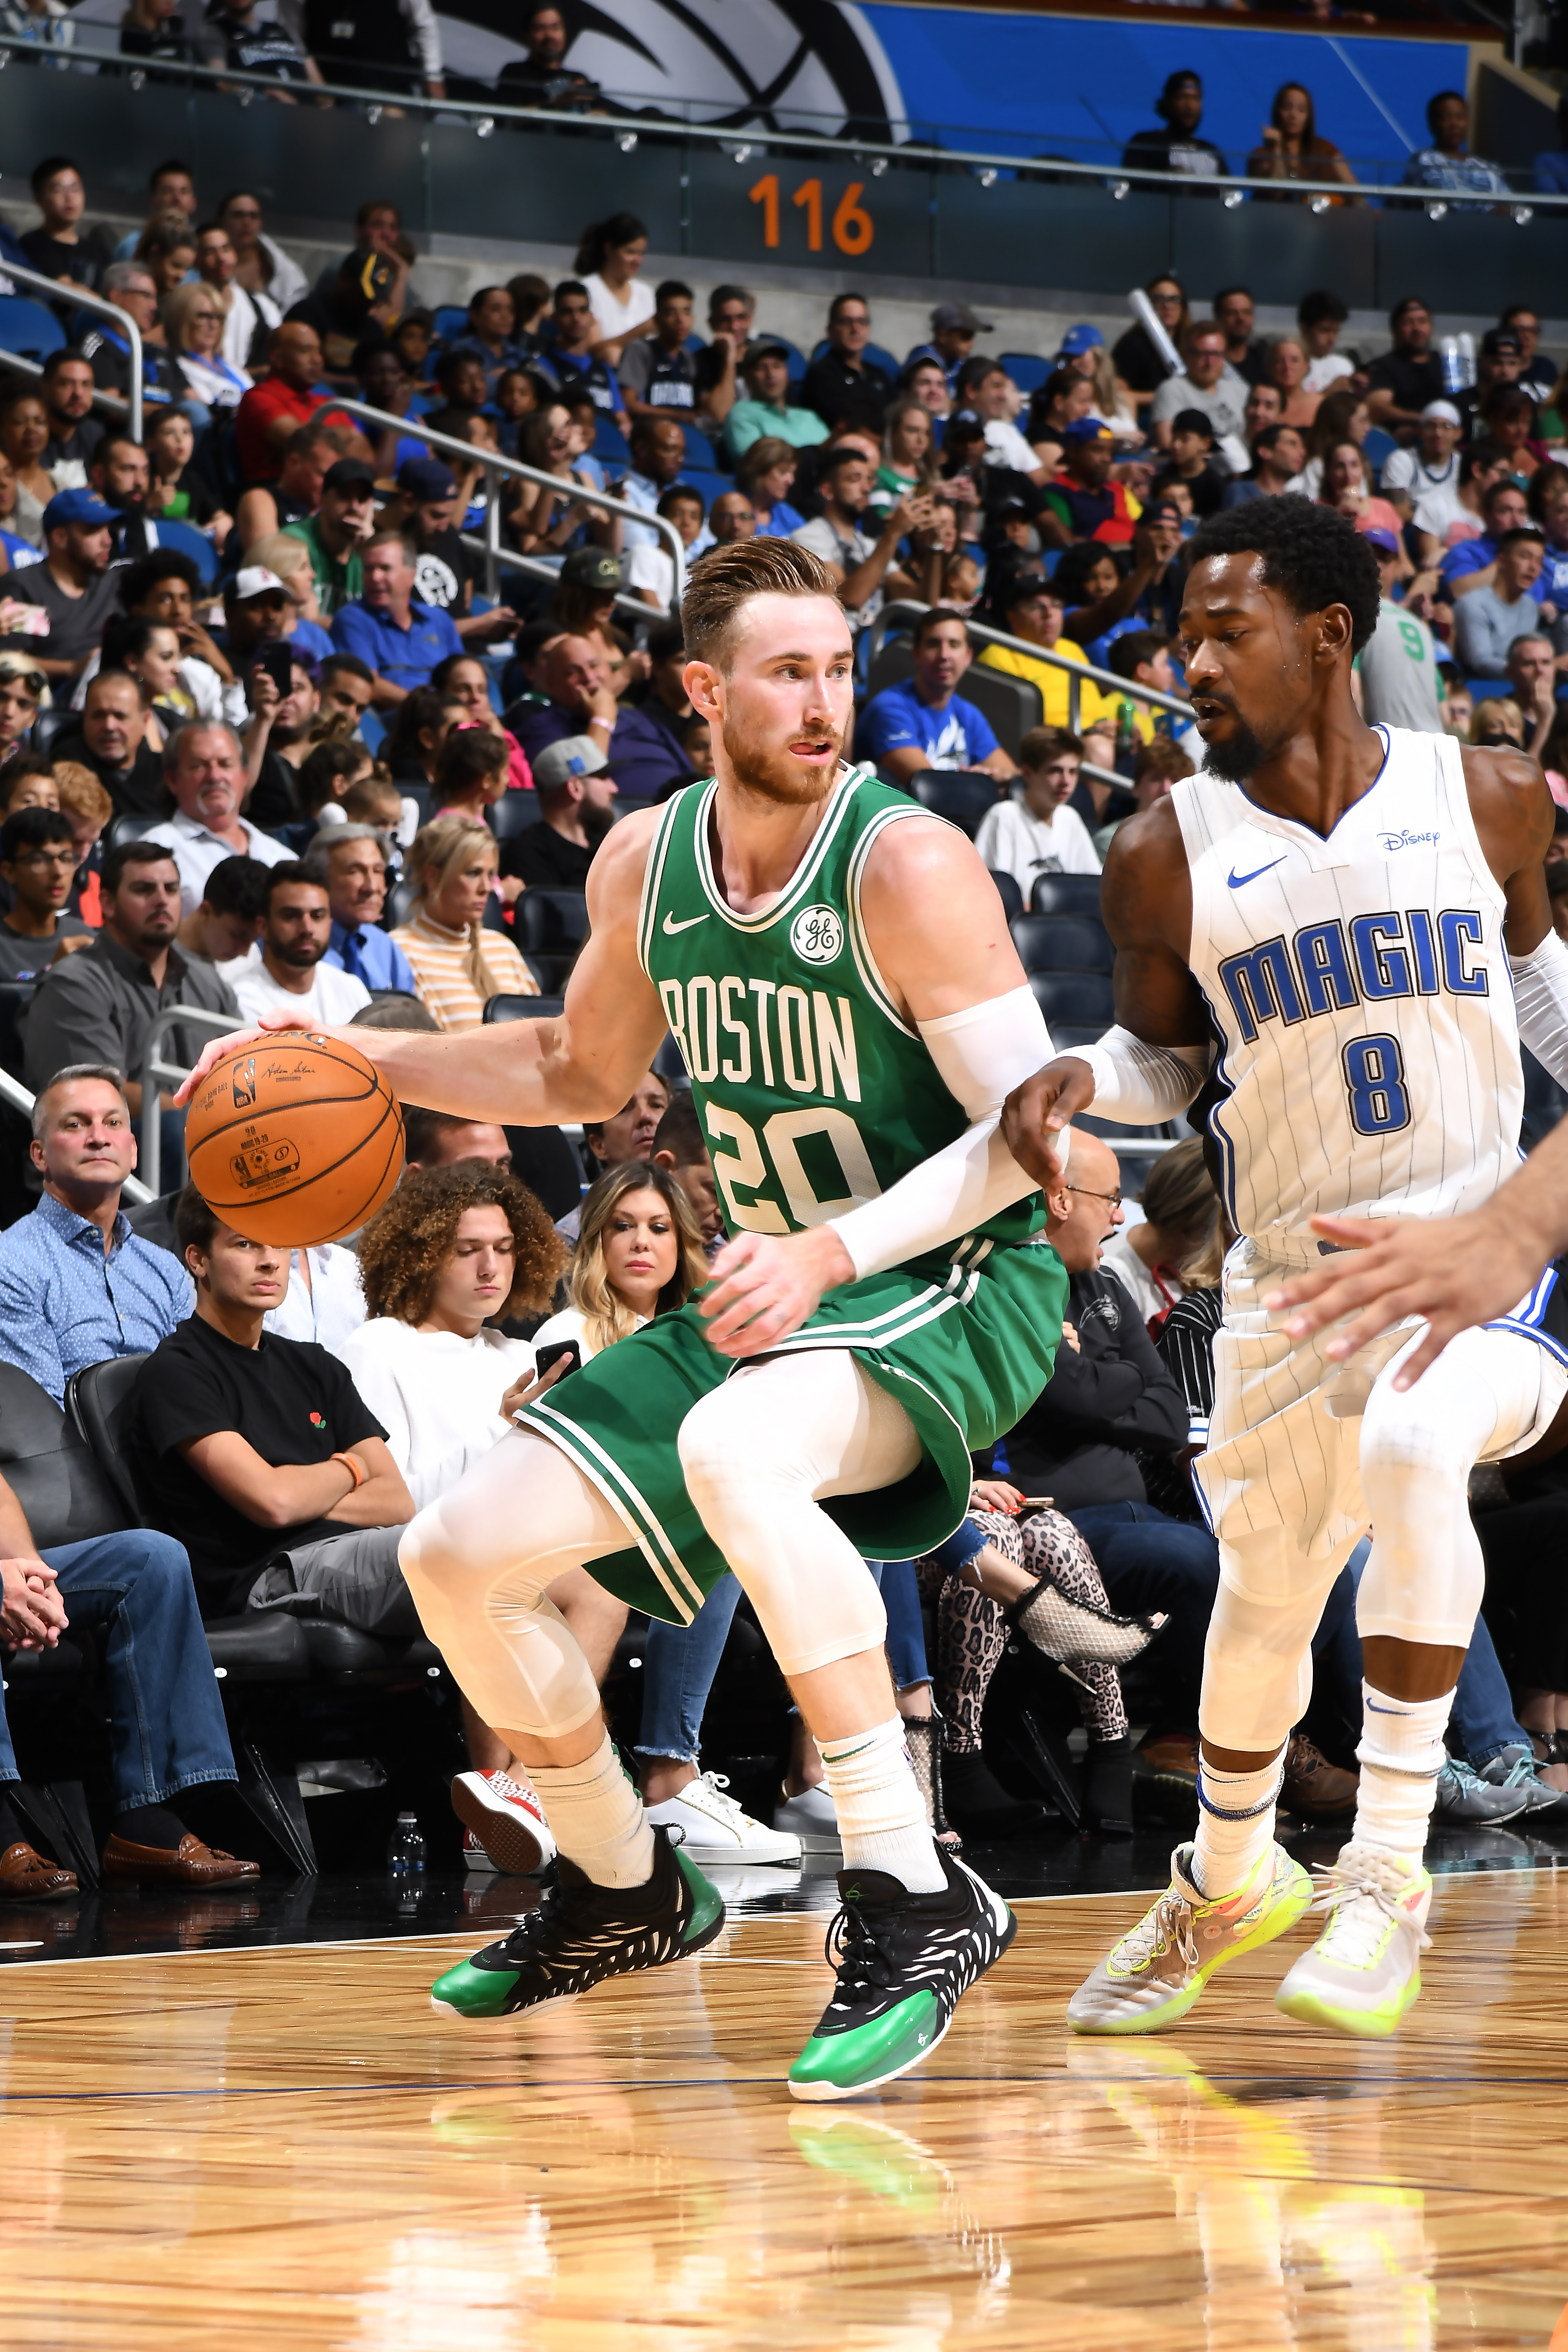 What to expect from Gordon Hayward in 2019-20